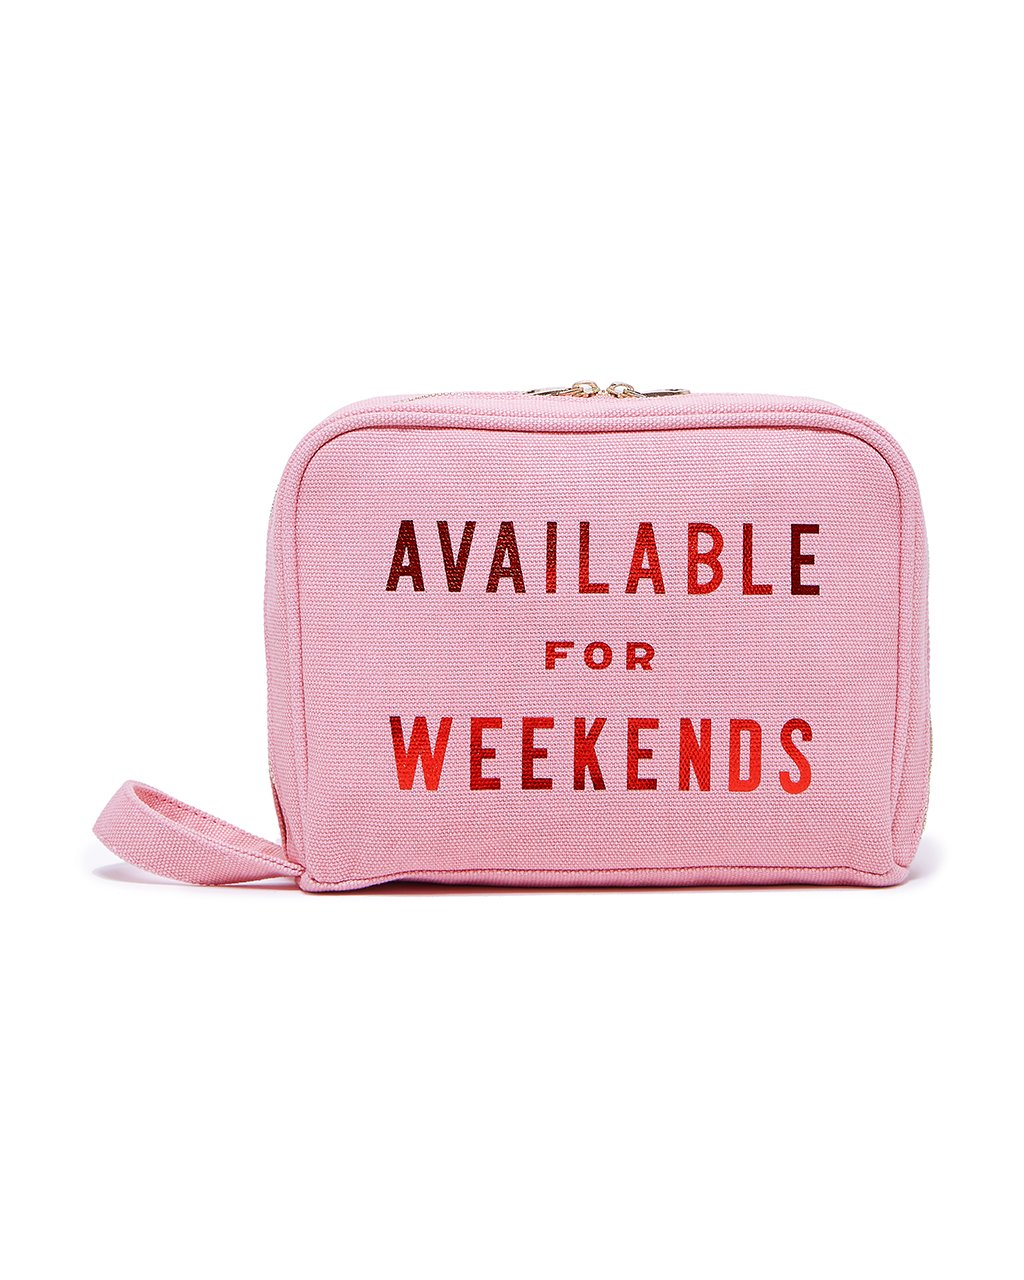 Available For Weekends Toiletry Bag